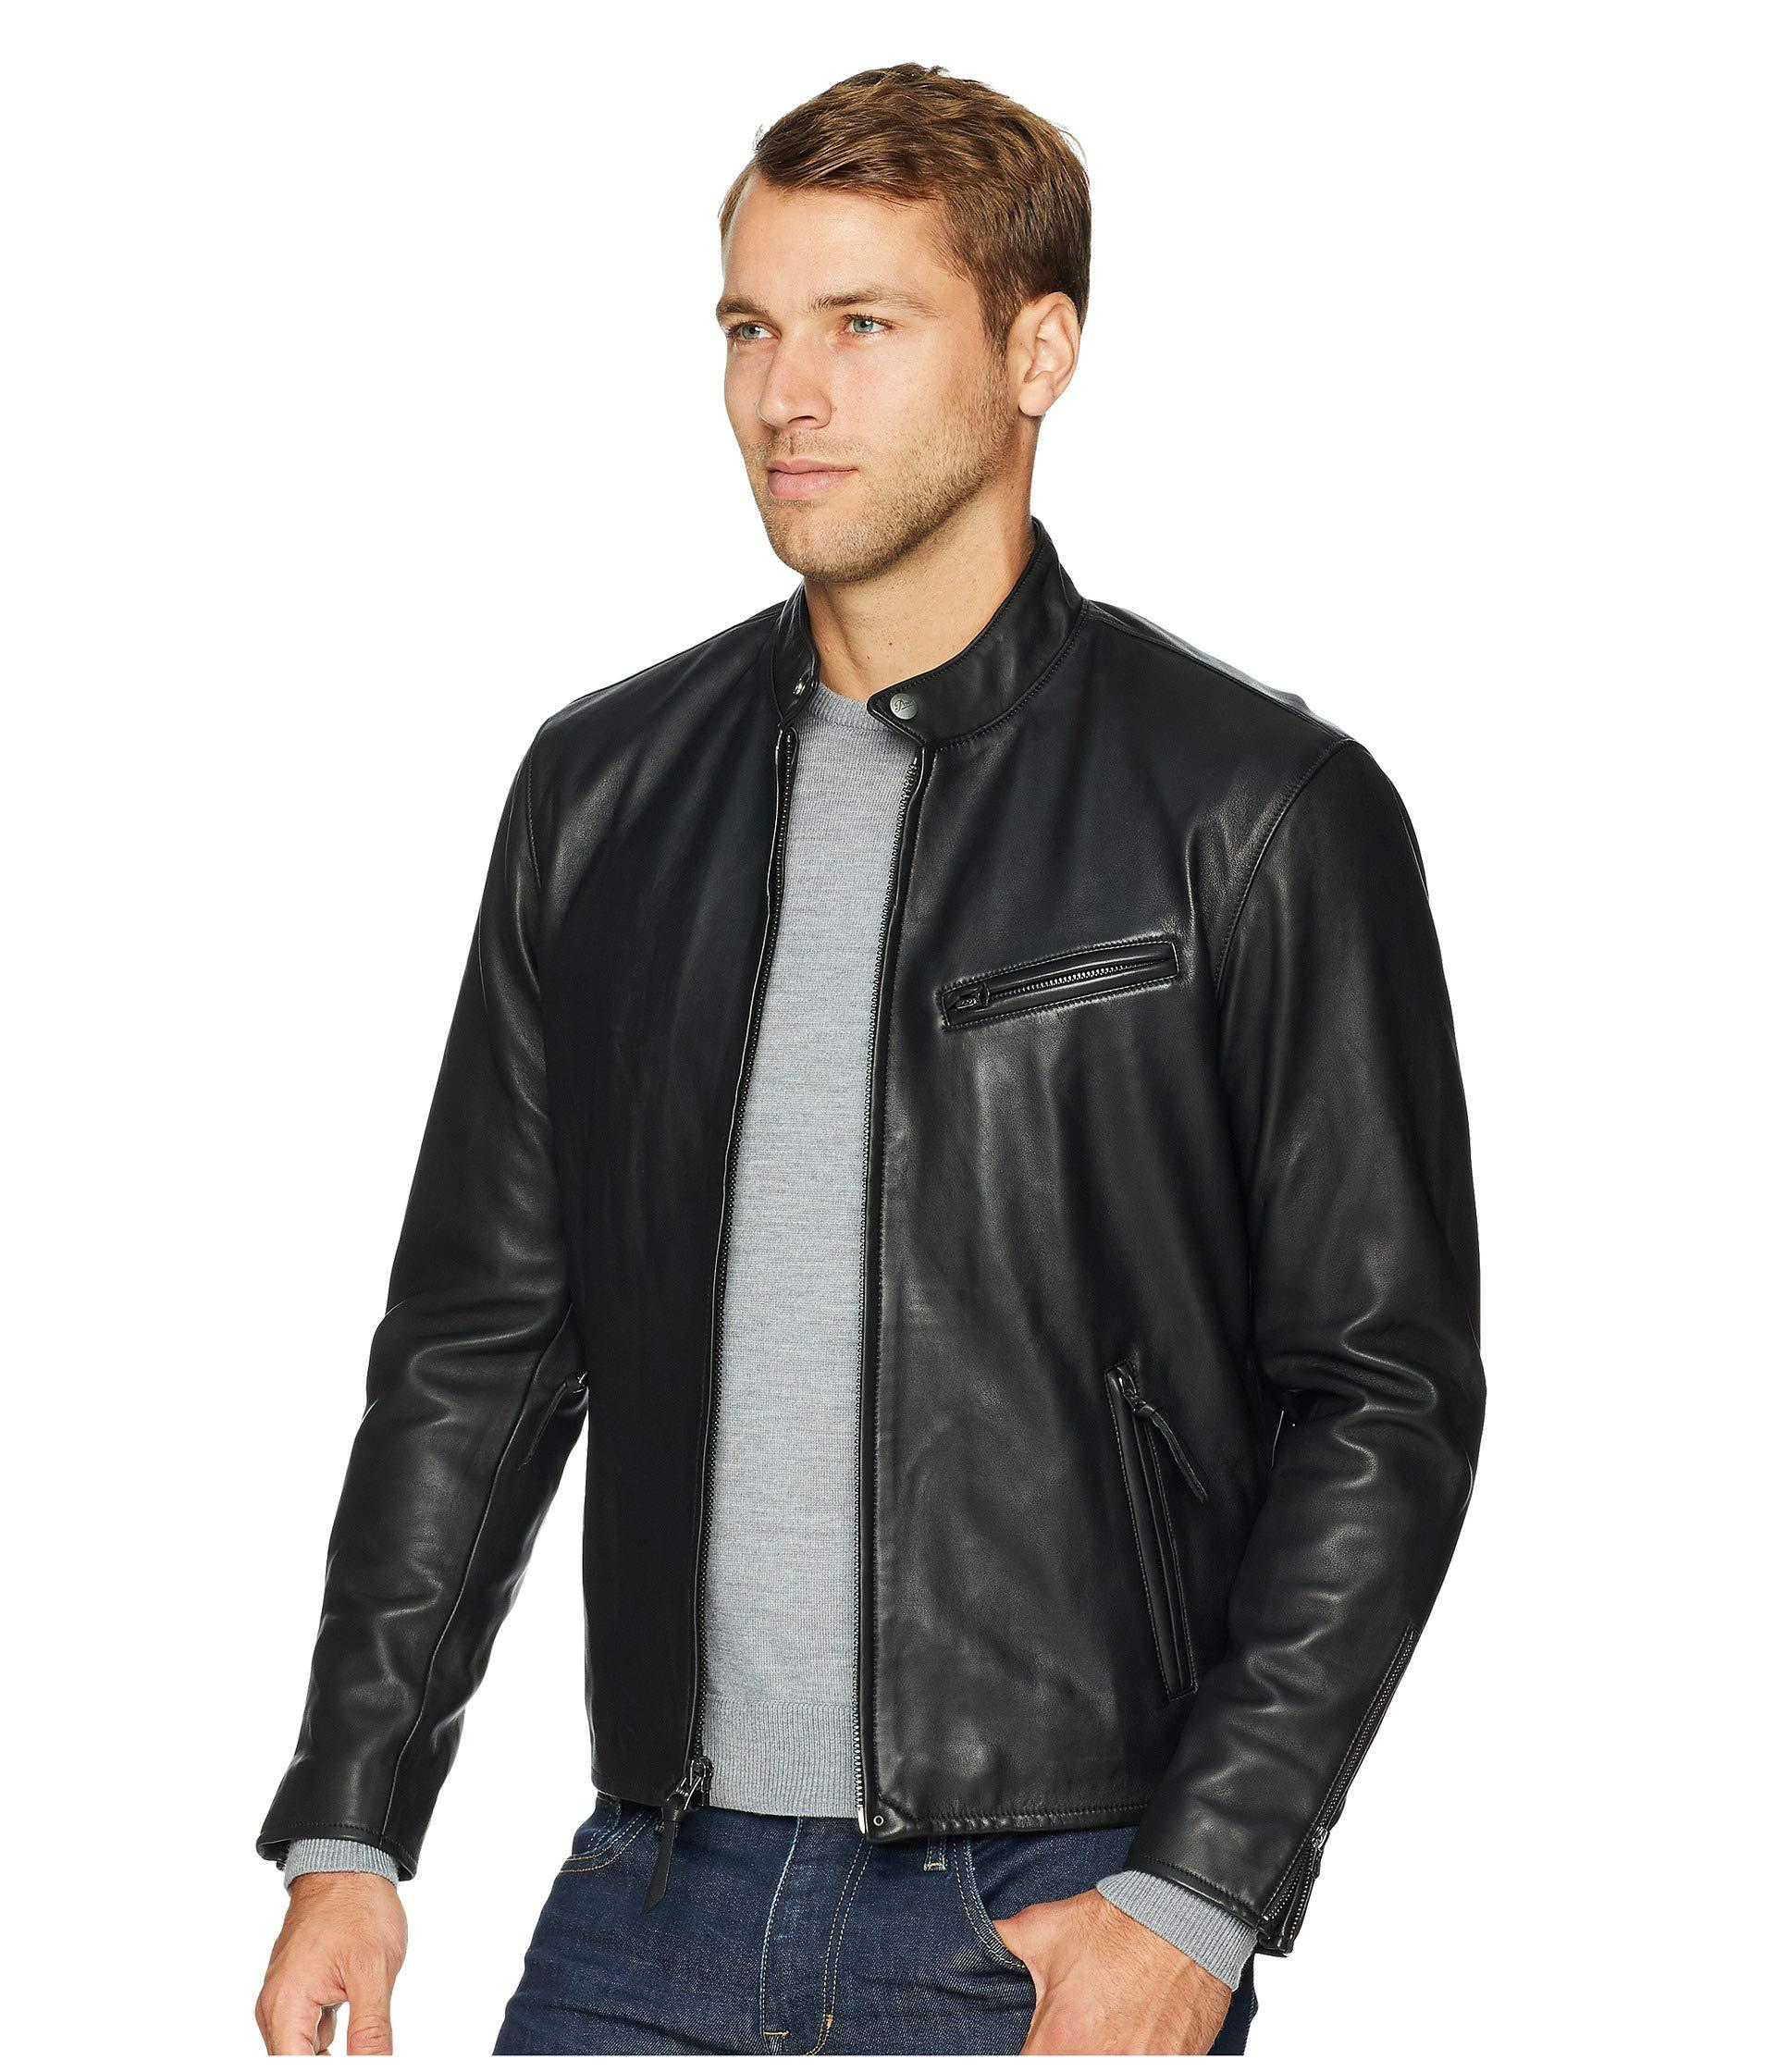 Lyst - Polo Ralph Lauren Cafe Racer Leather Jacket (old Amber) Men s Coat  in Black for Men cccacd3a066f7